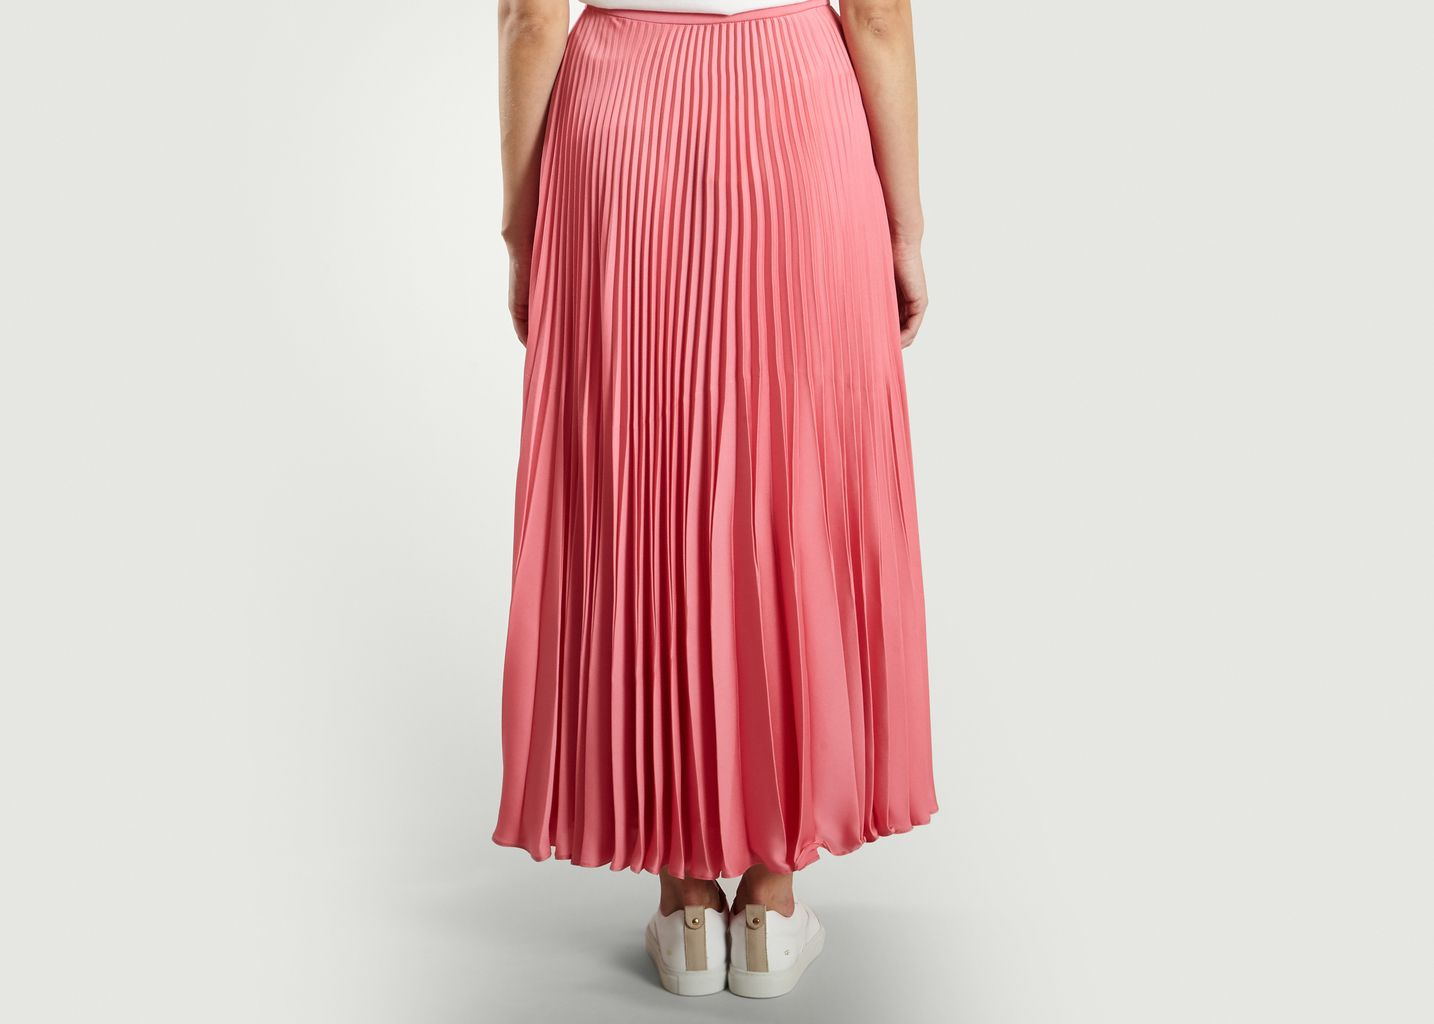 Pleated Skirt - Tara Jarmon